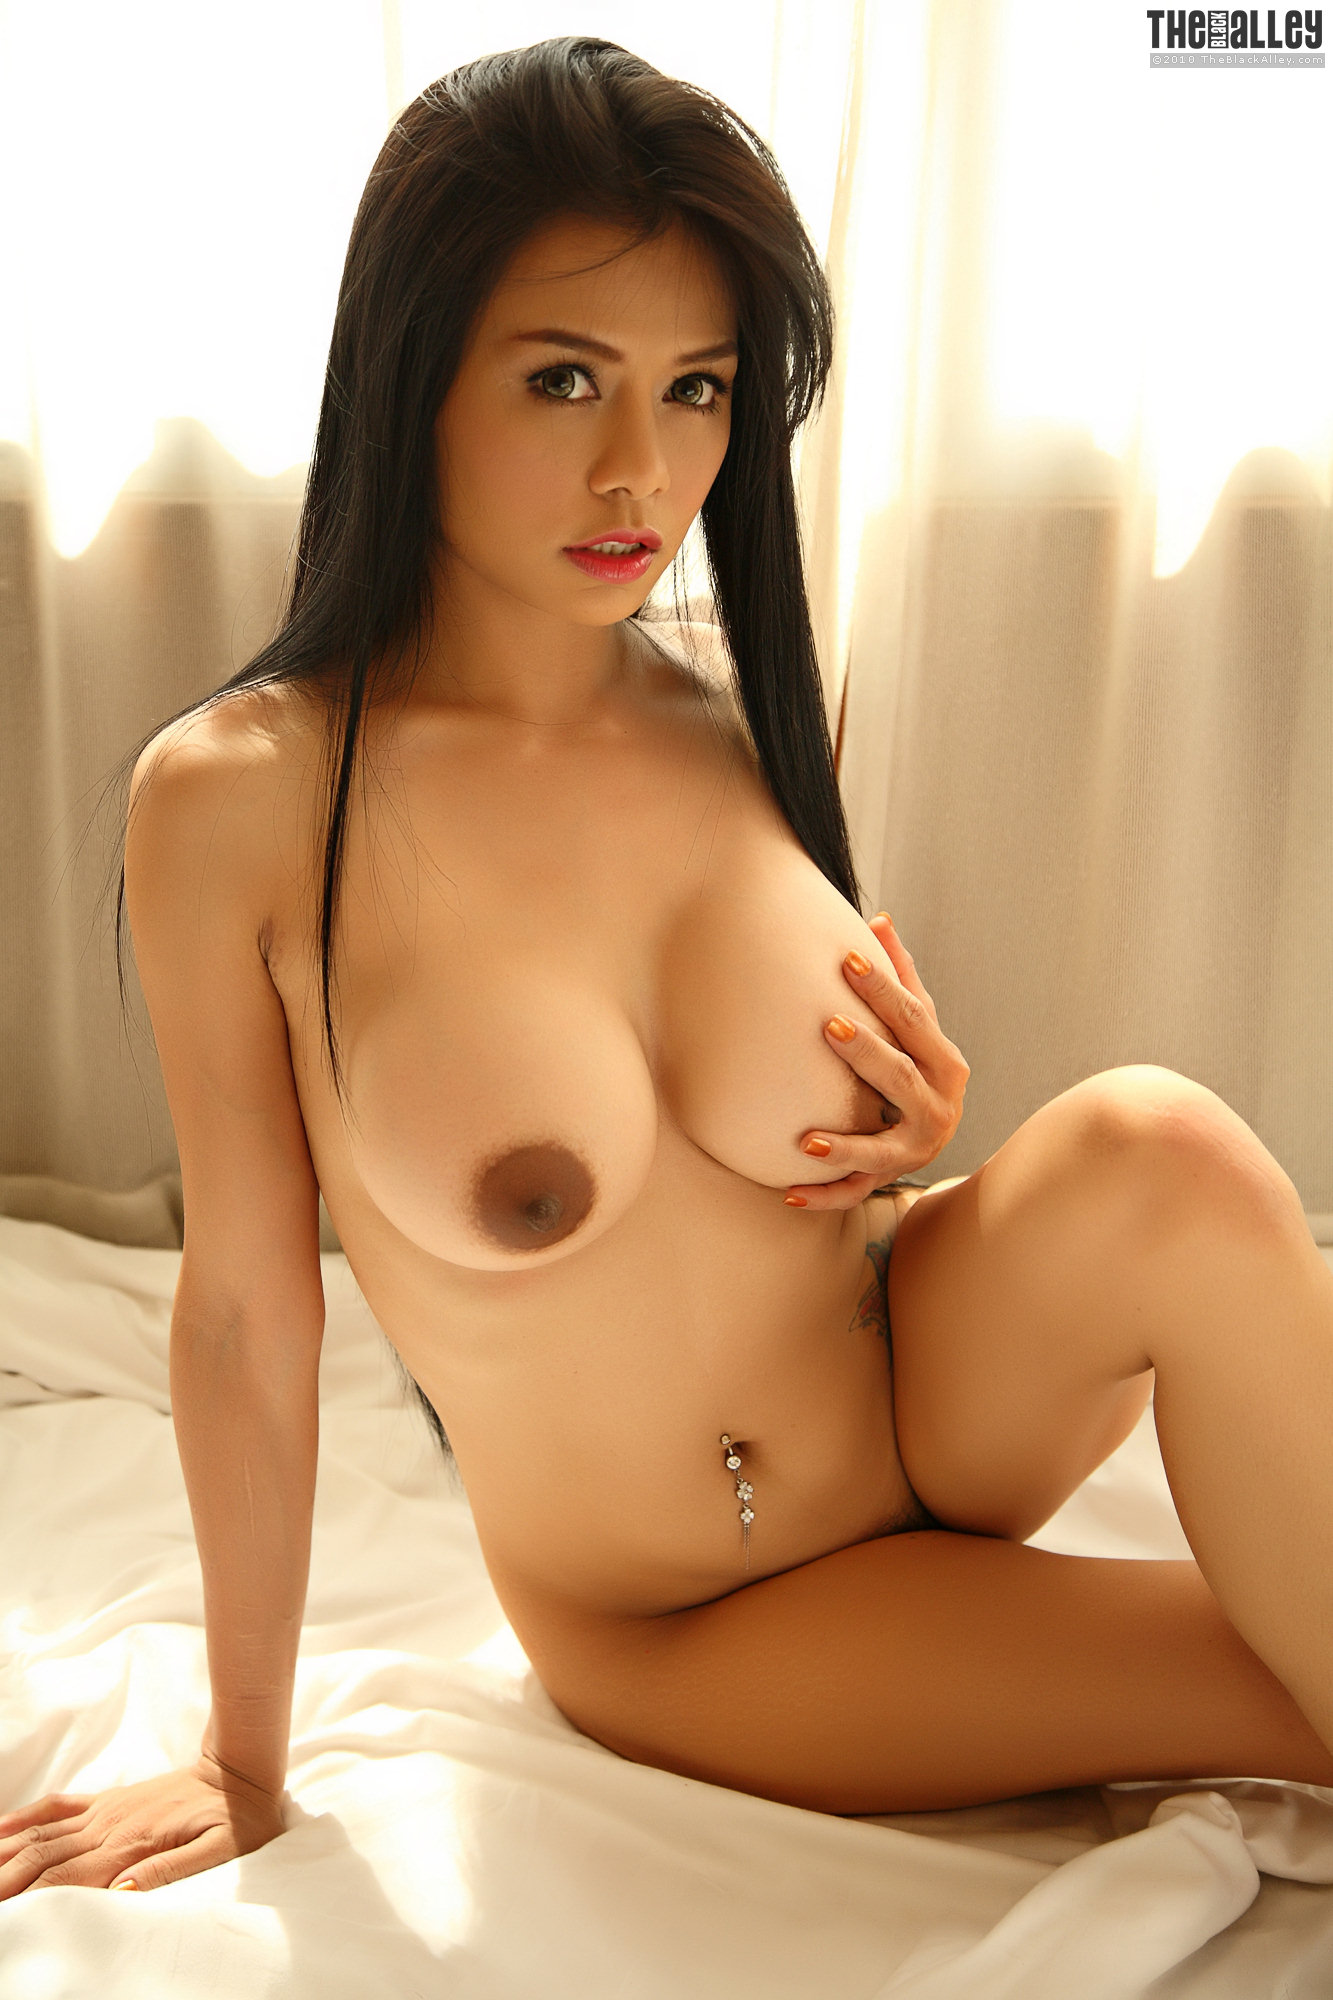 Sexy Naked Chinese Women Pics Photos Crpmb